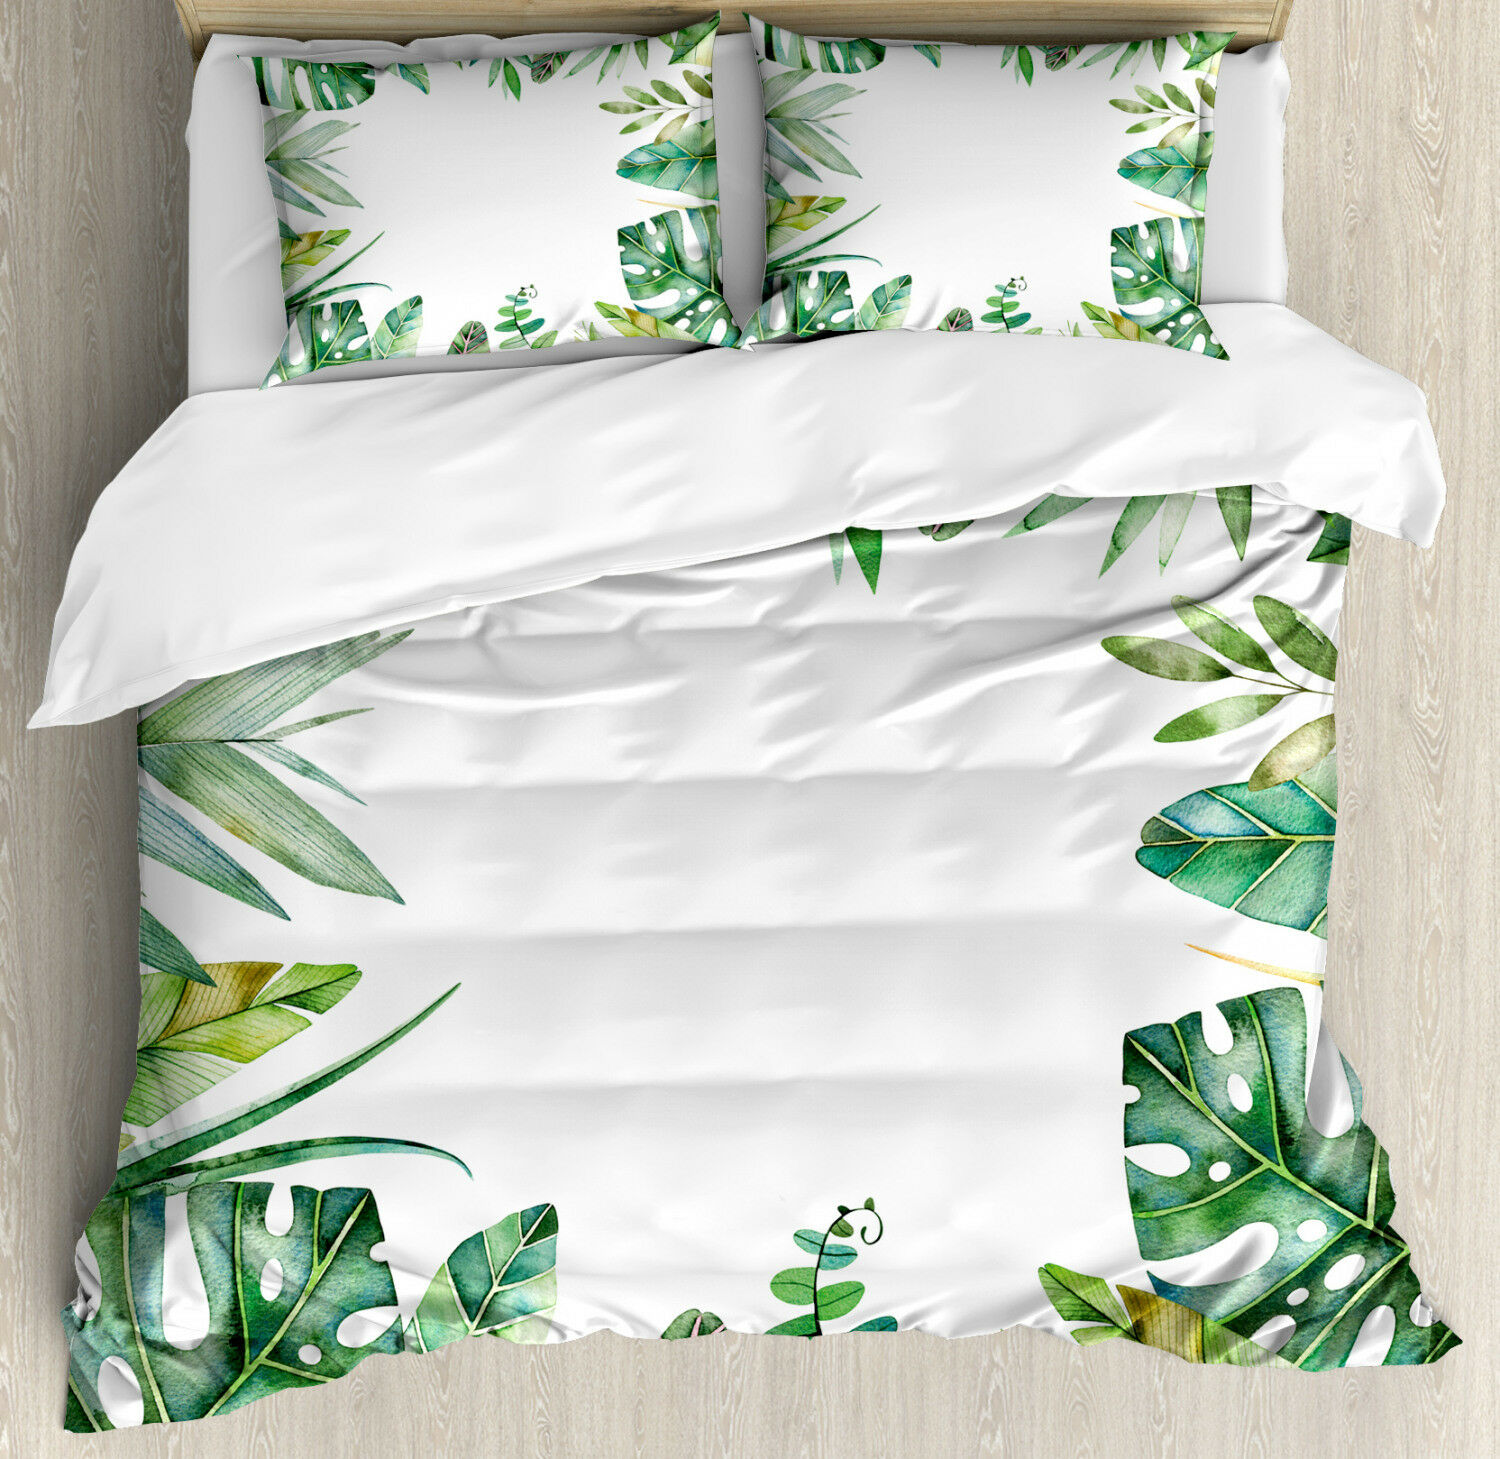 Plant Duvet Cover Set with Pillow Shams Jungle Themed Picture Print